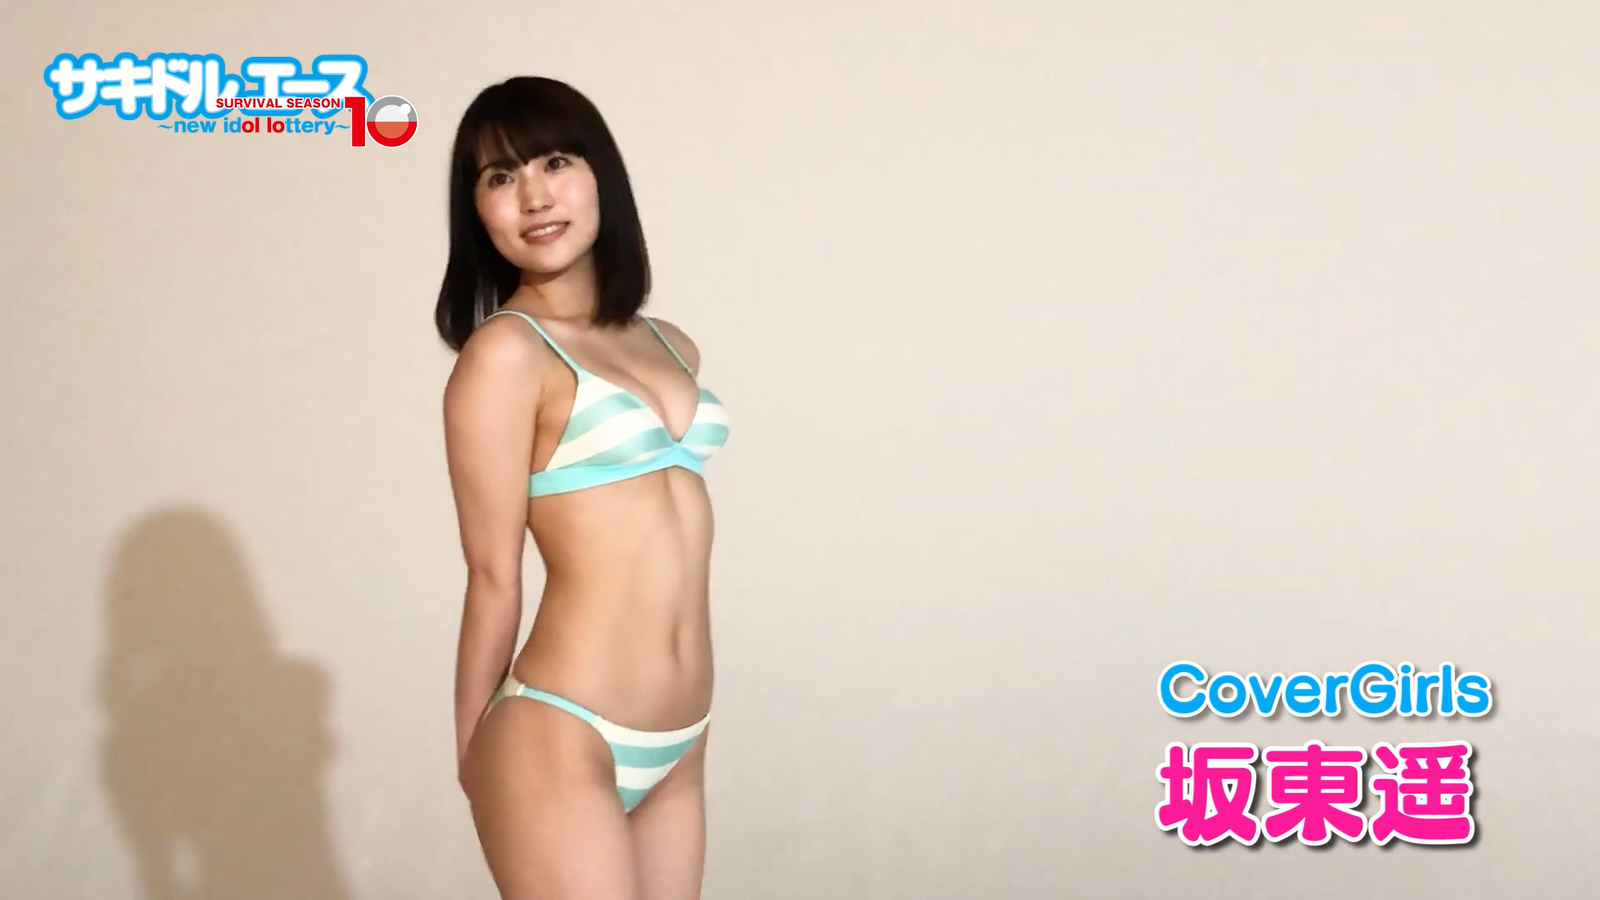 Sakidol Ace 10 Introduction Movie Capture of Swimsuit110